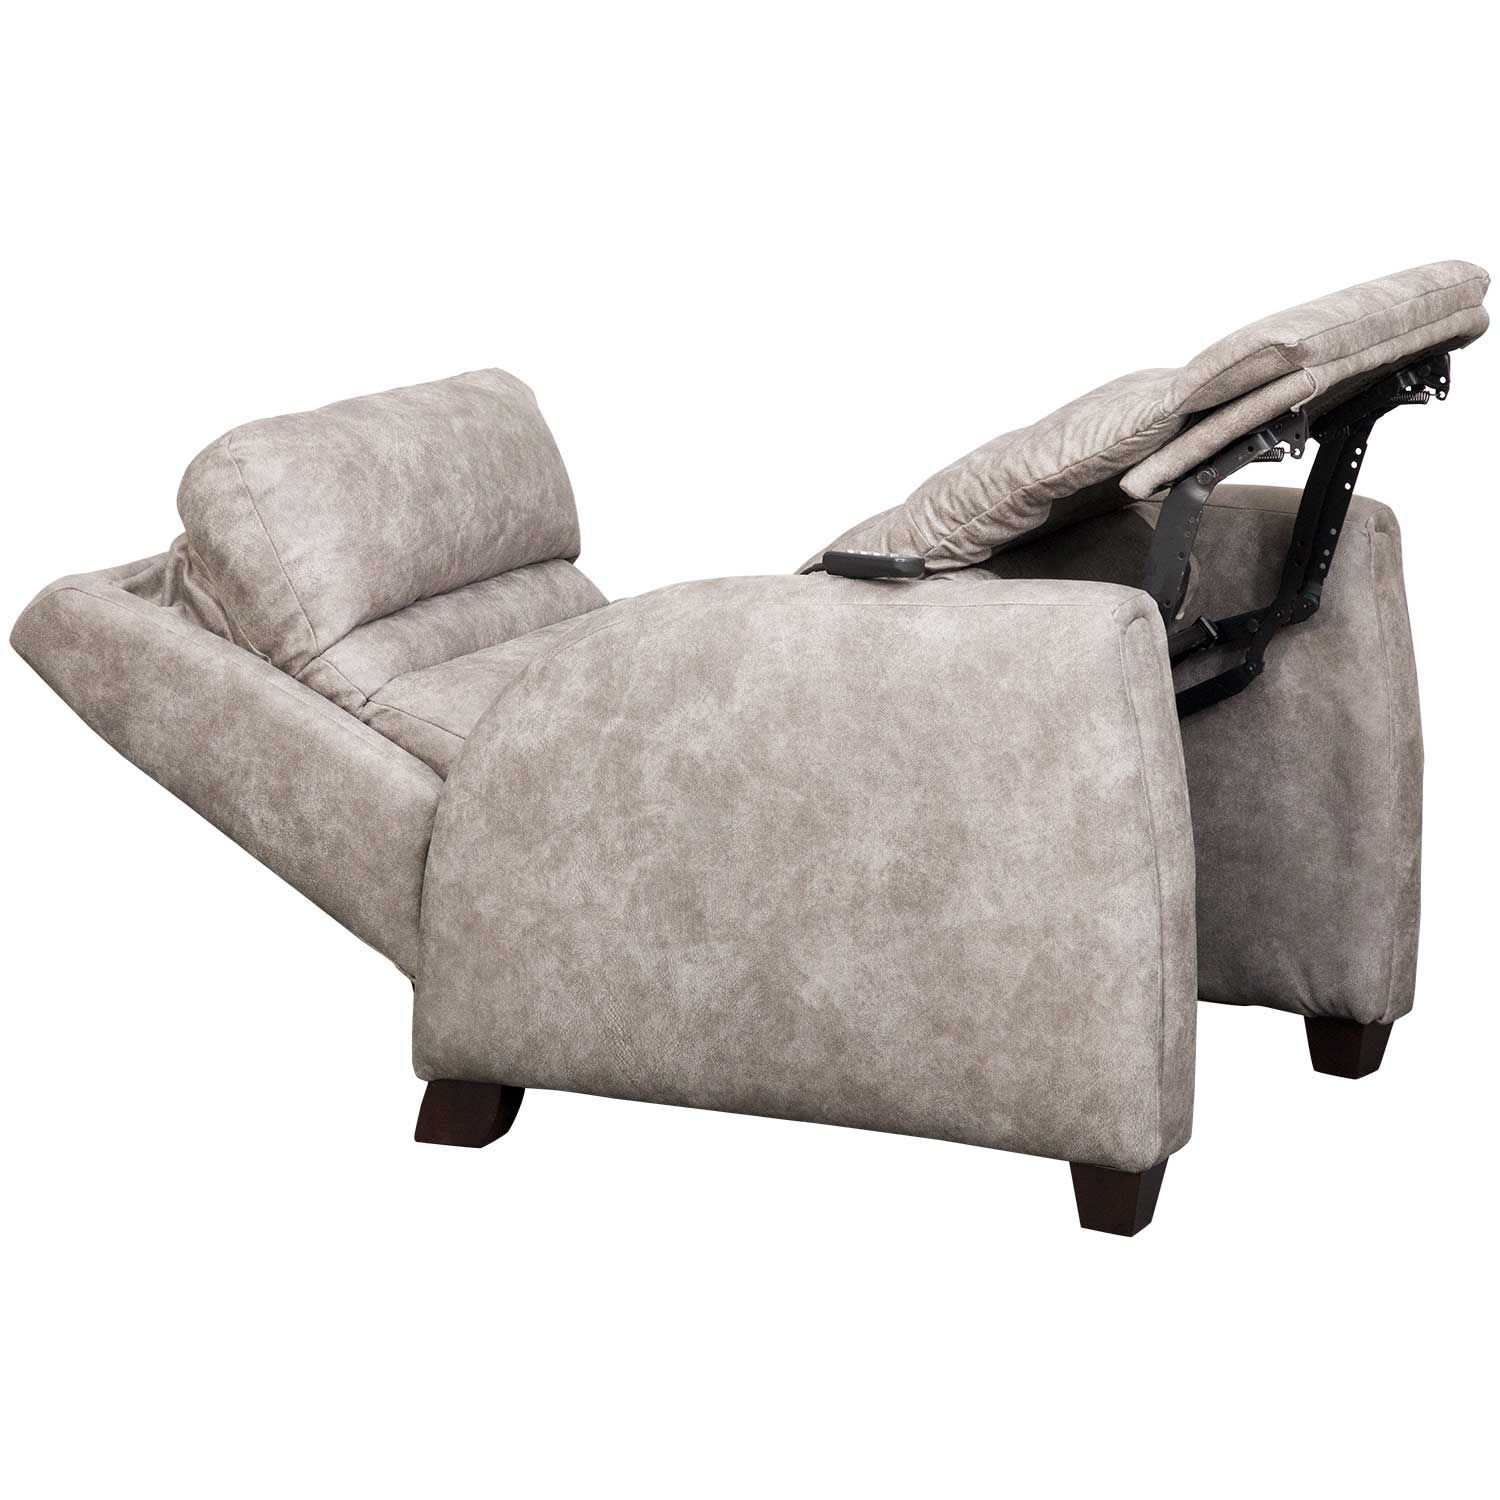 Picture of Turbo Cobblestone Zero Gravity Power Recliner with Adjustable Headrest